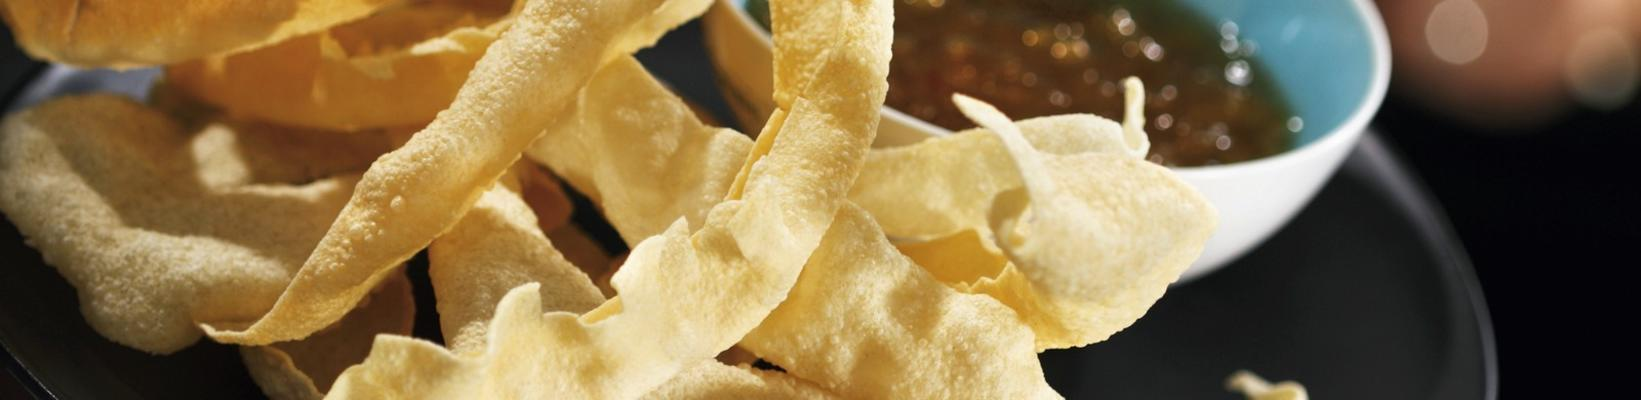 sling chips with chutney dip